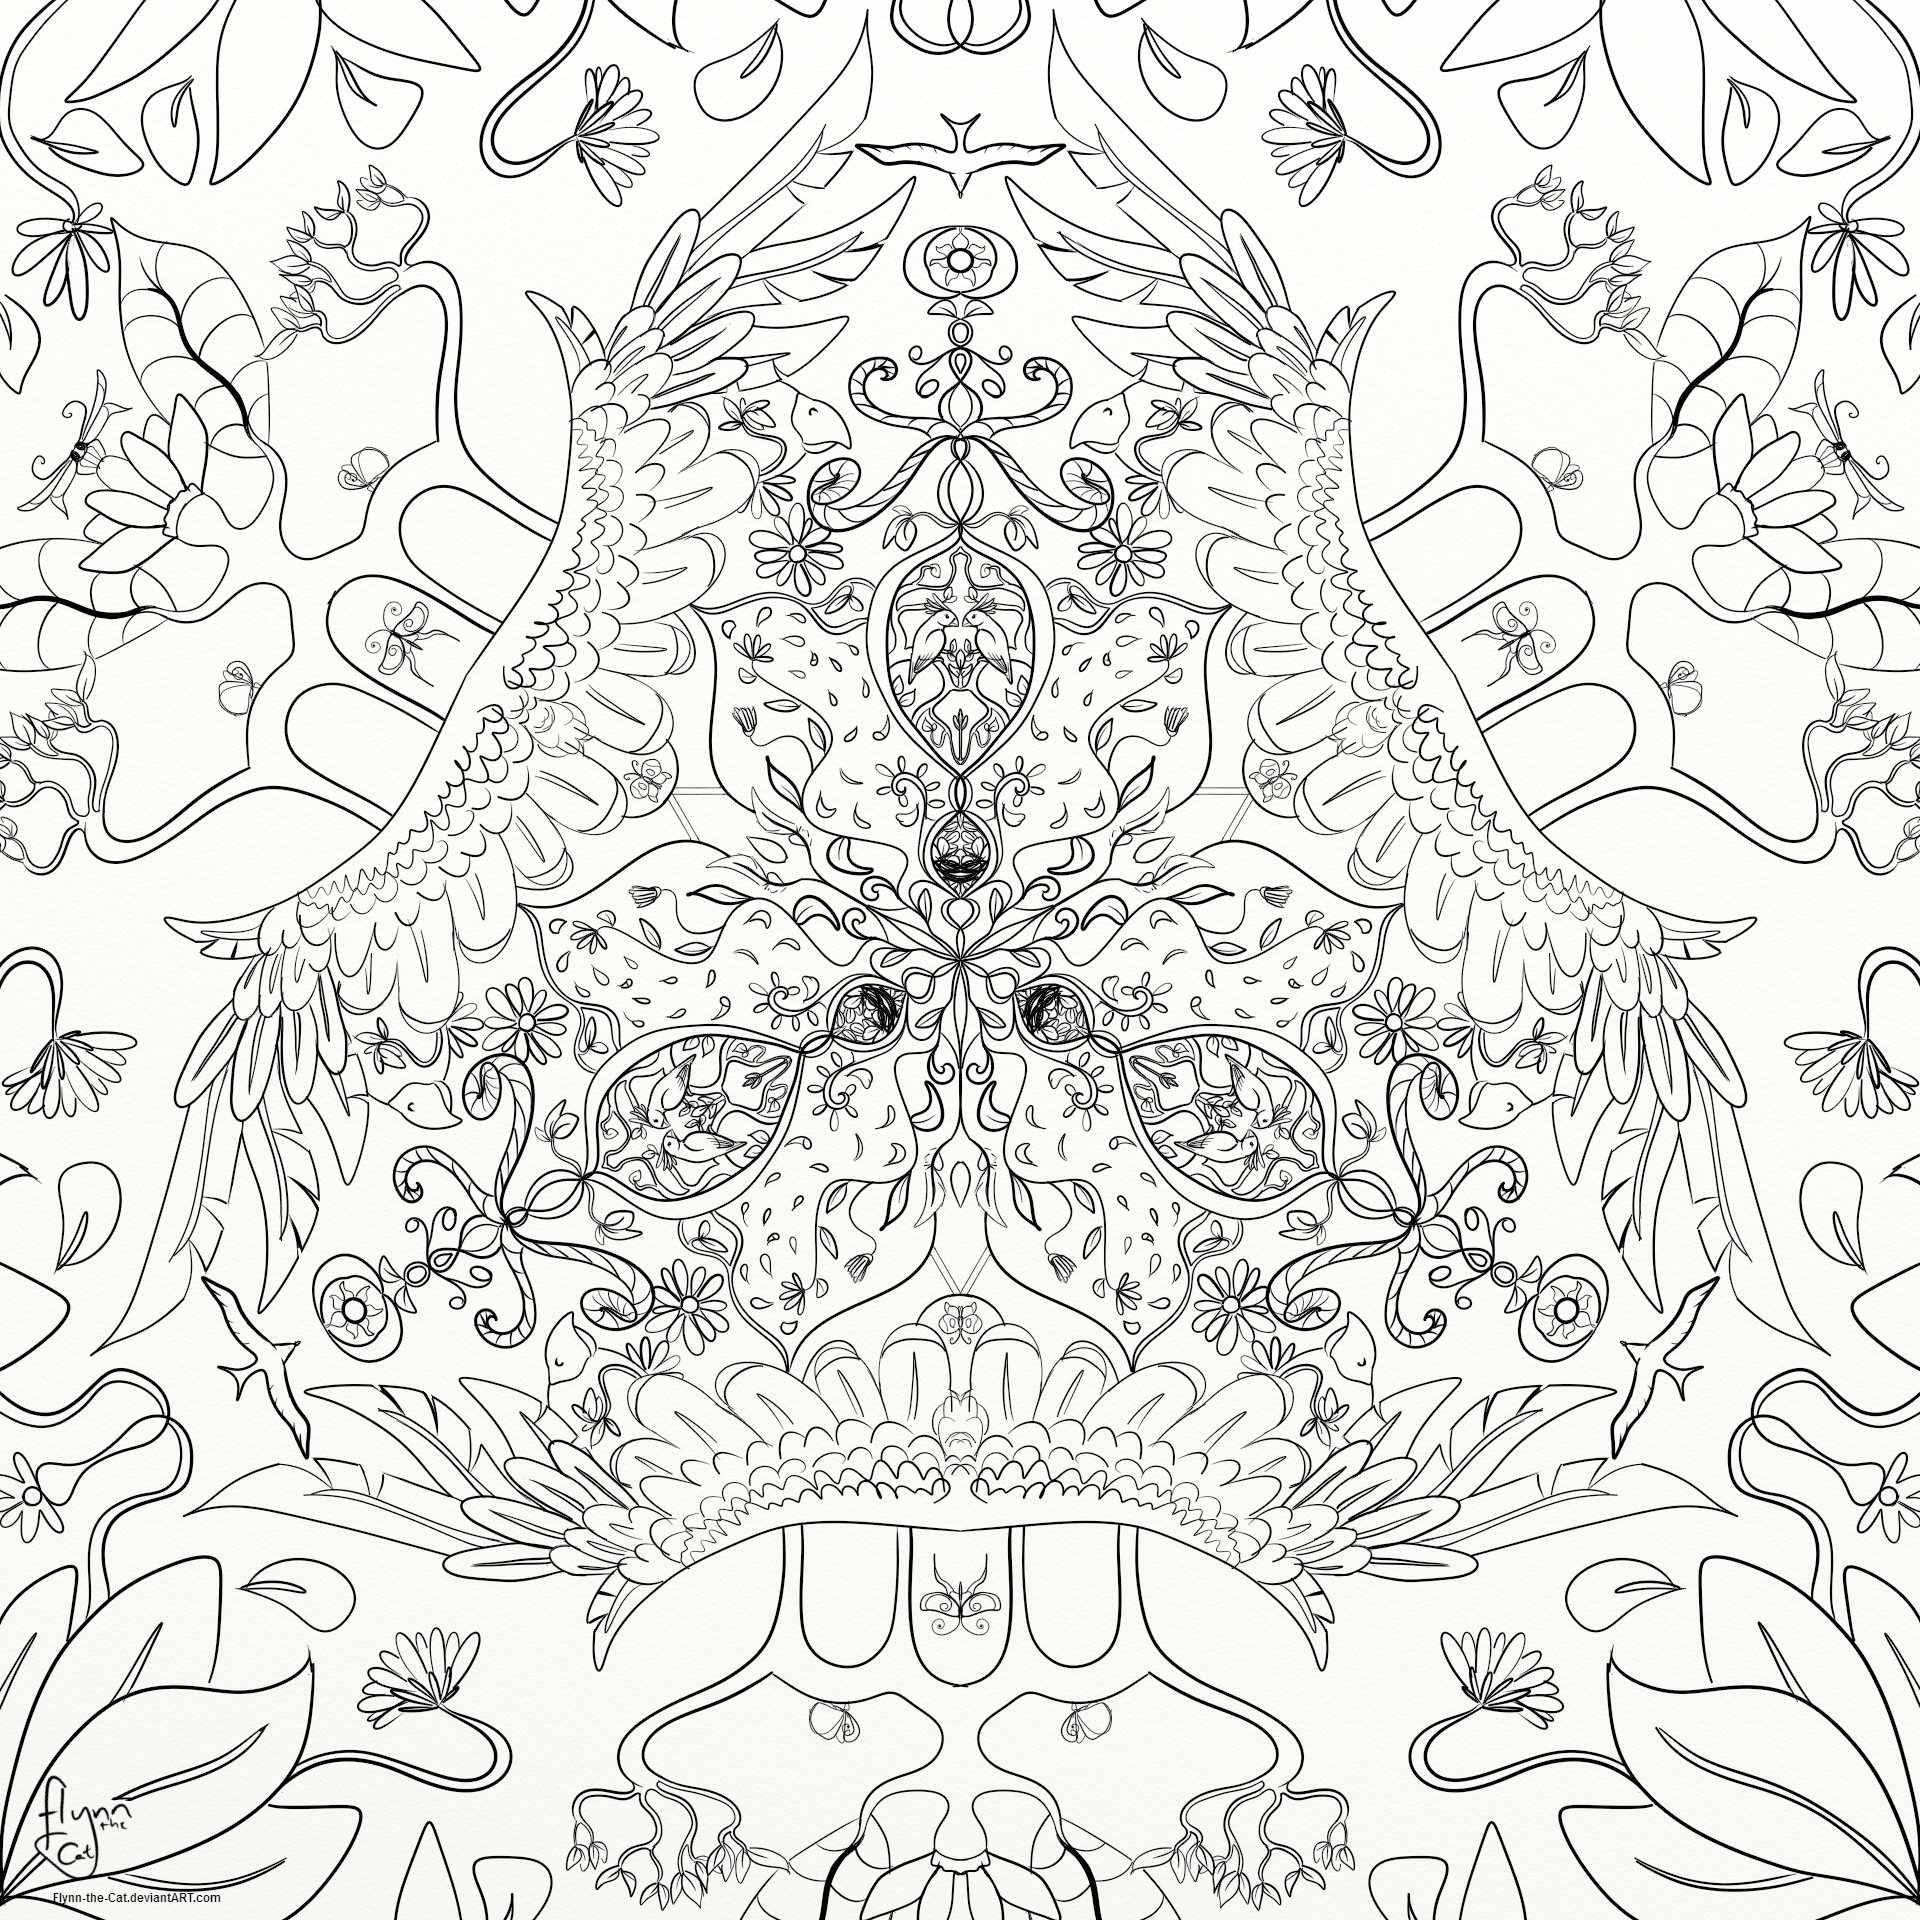 s line of symmetry coloring pages - photo #34